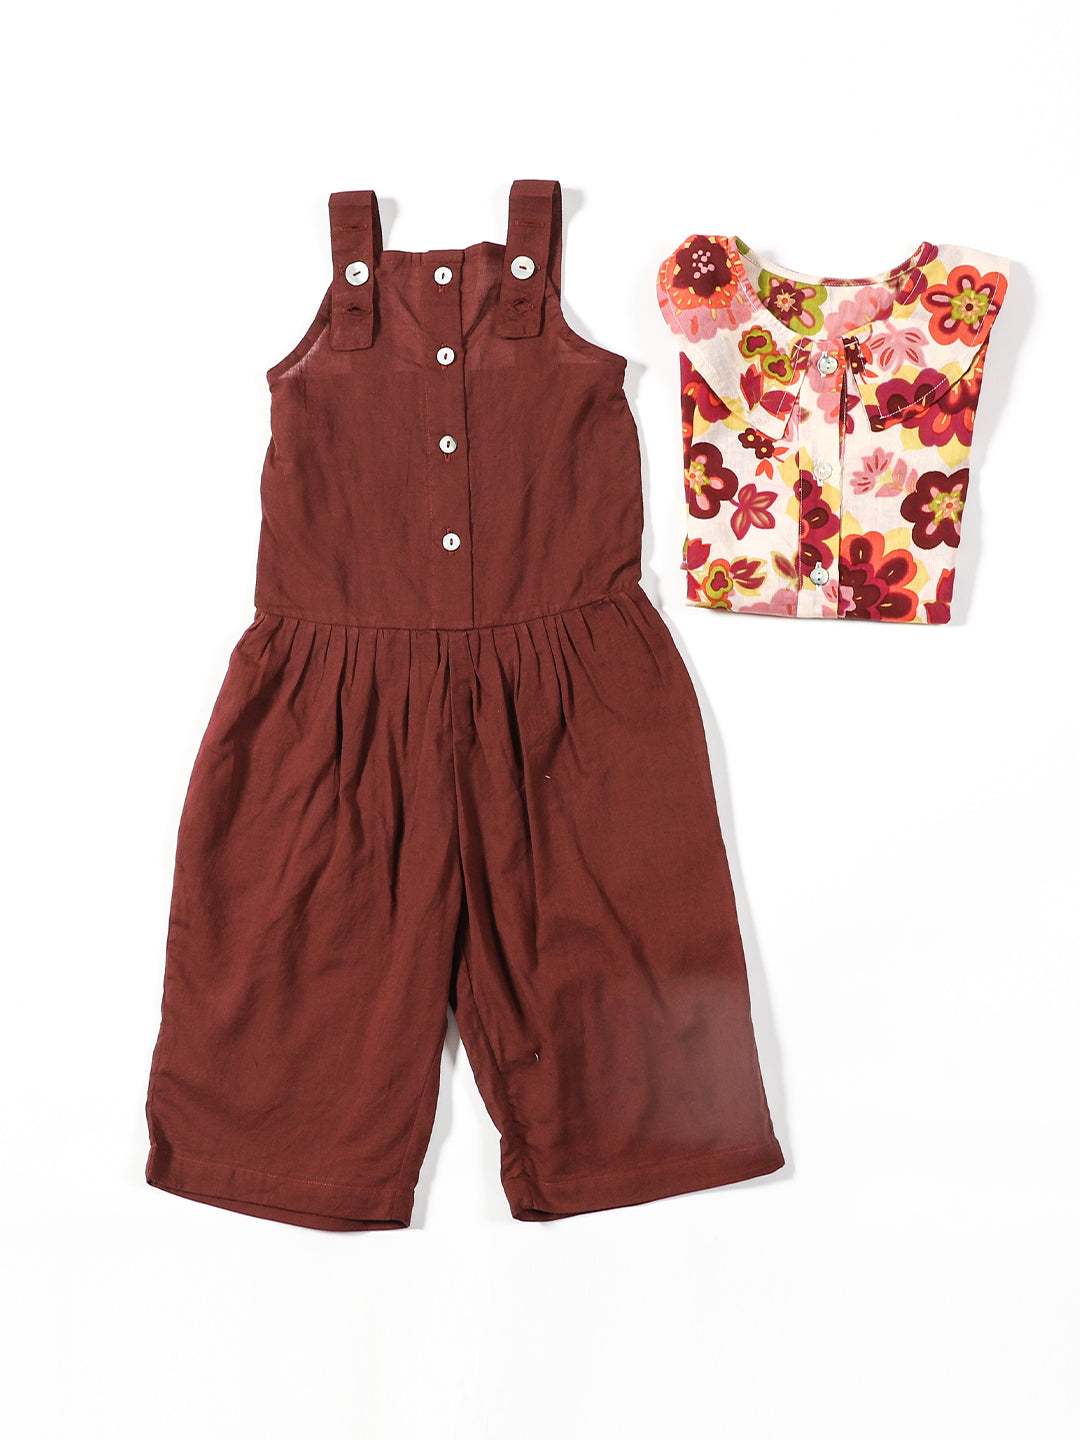 A SET OF SHIRT WITH PETER PAN COLLAR AND A SLEEVELESS JUMPSUIT